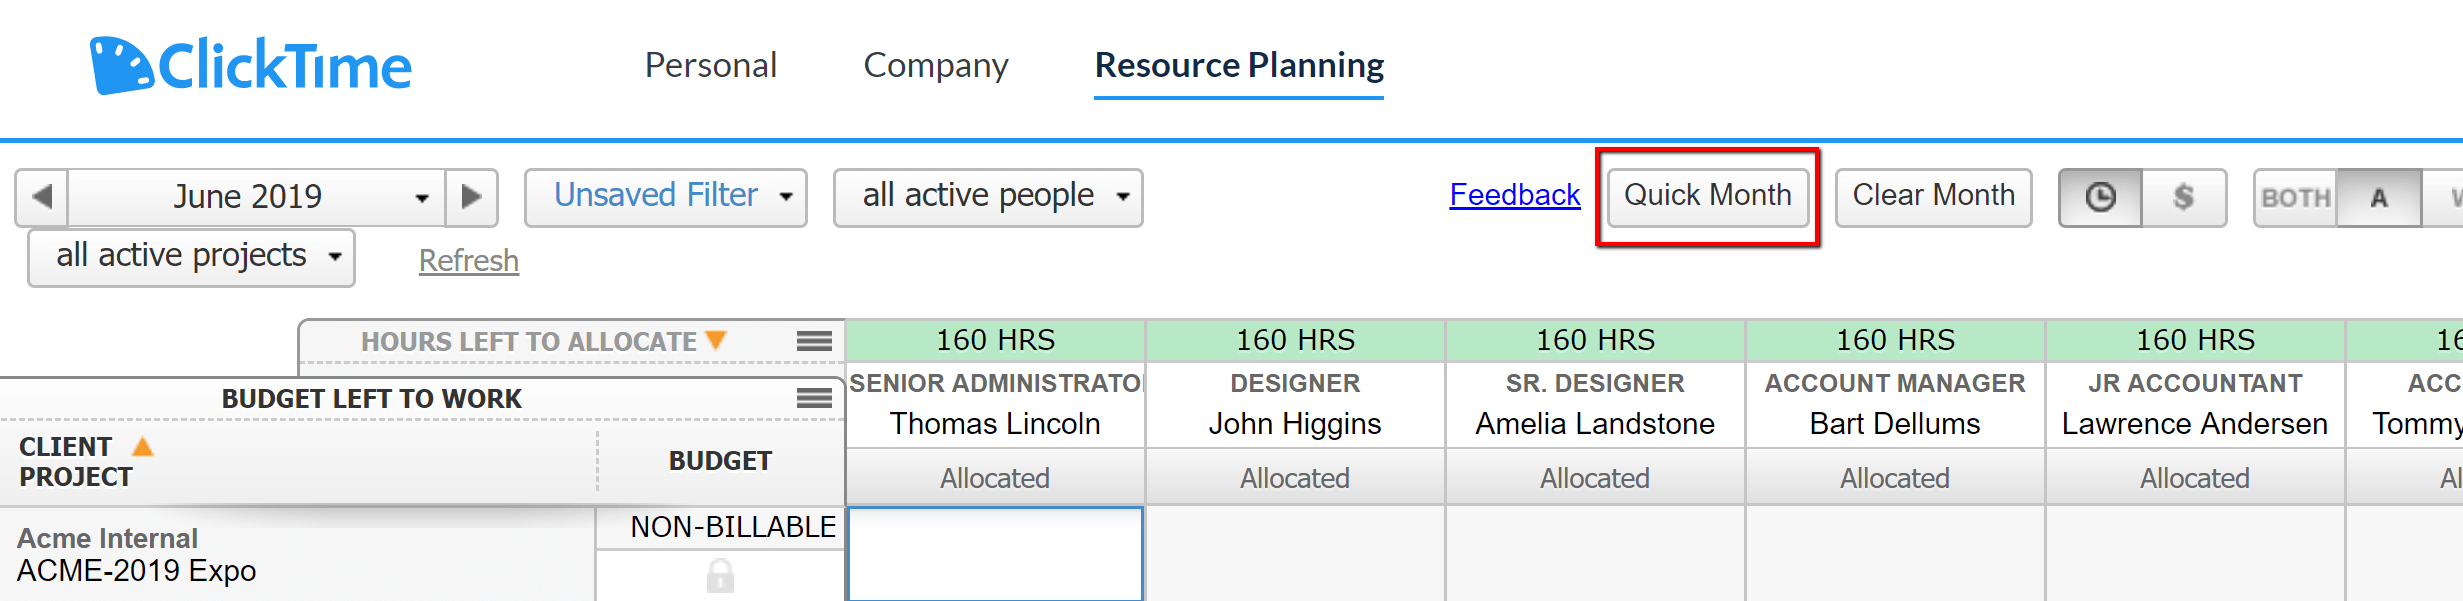 Resource_Planning_4.png